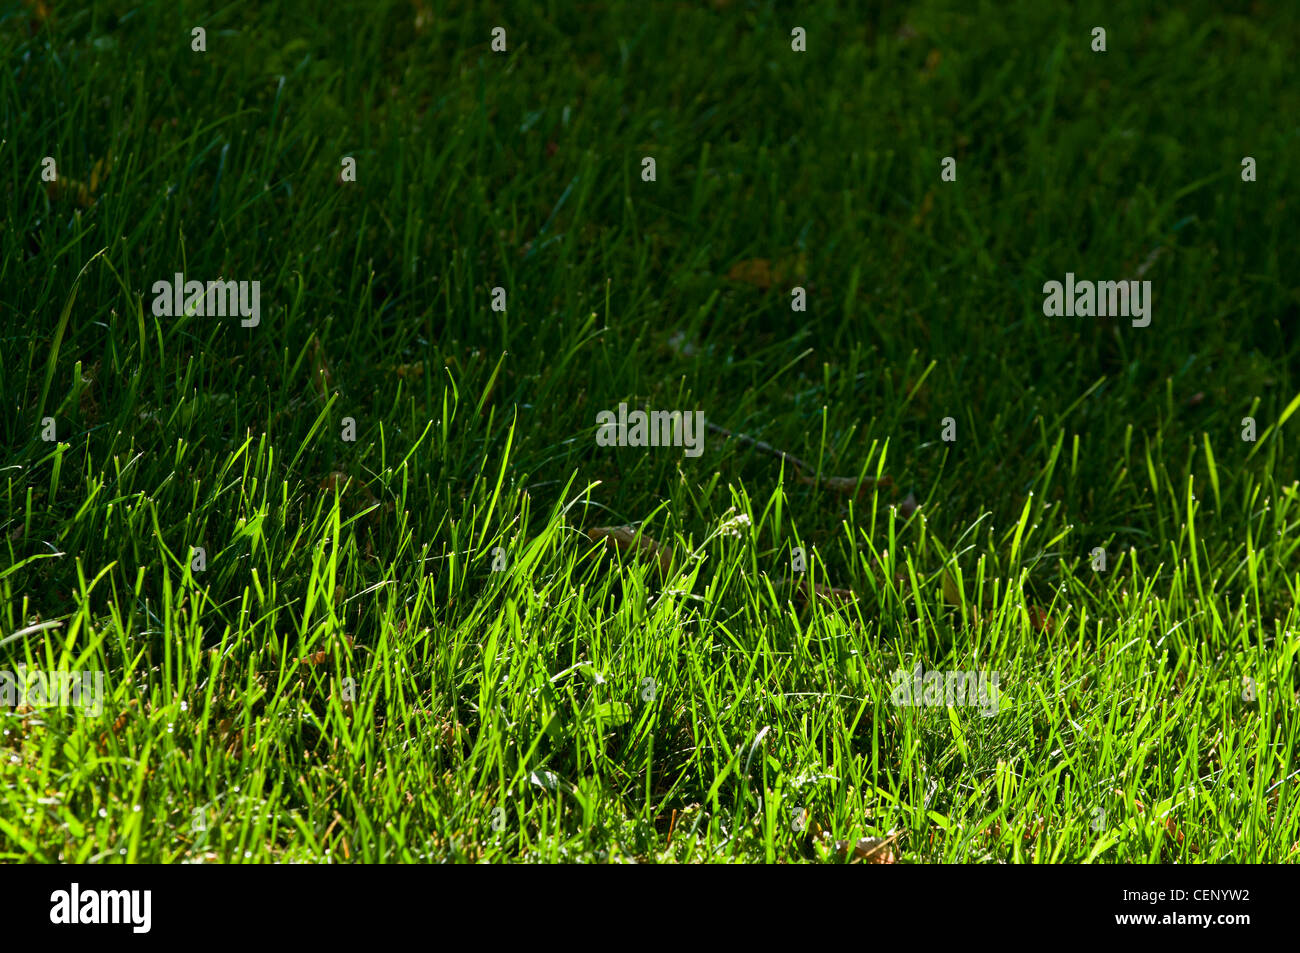 Grass Half In The Sun And Half In The Shade; St. Albert Alberta Canada - Stock Image